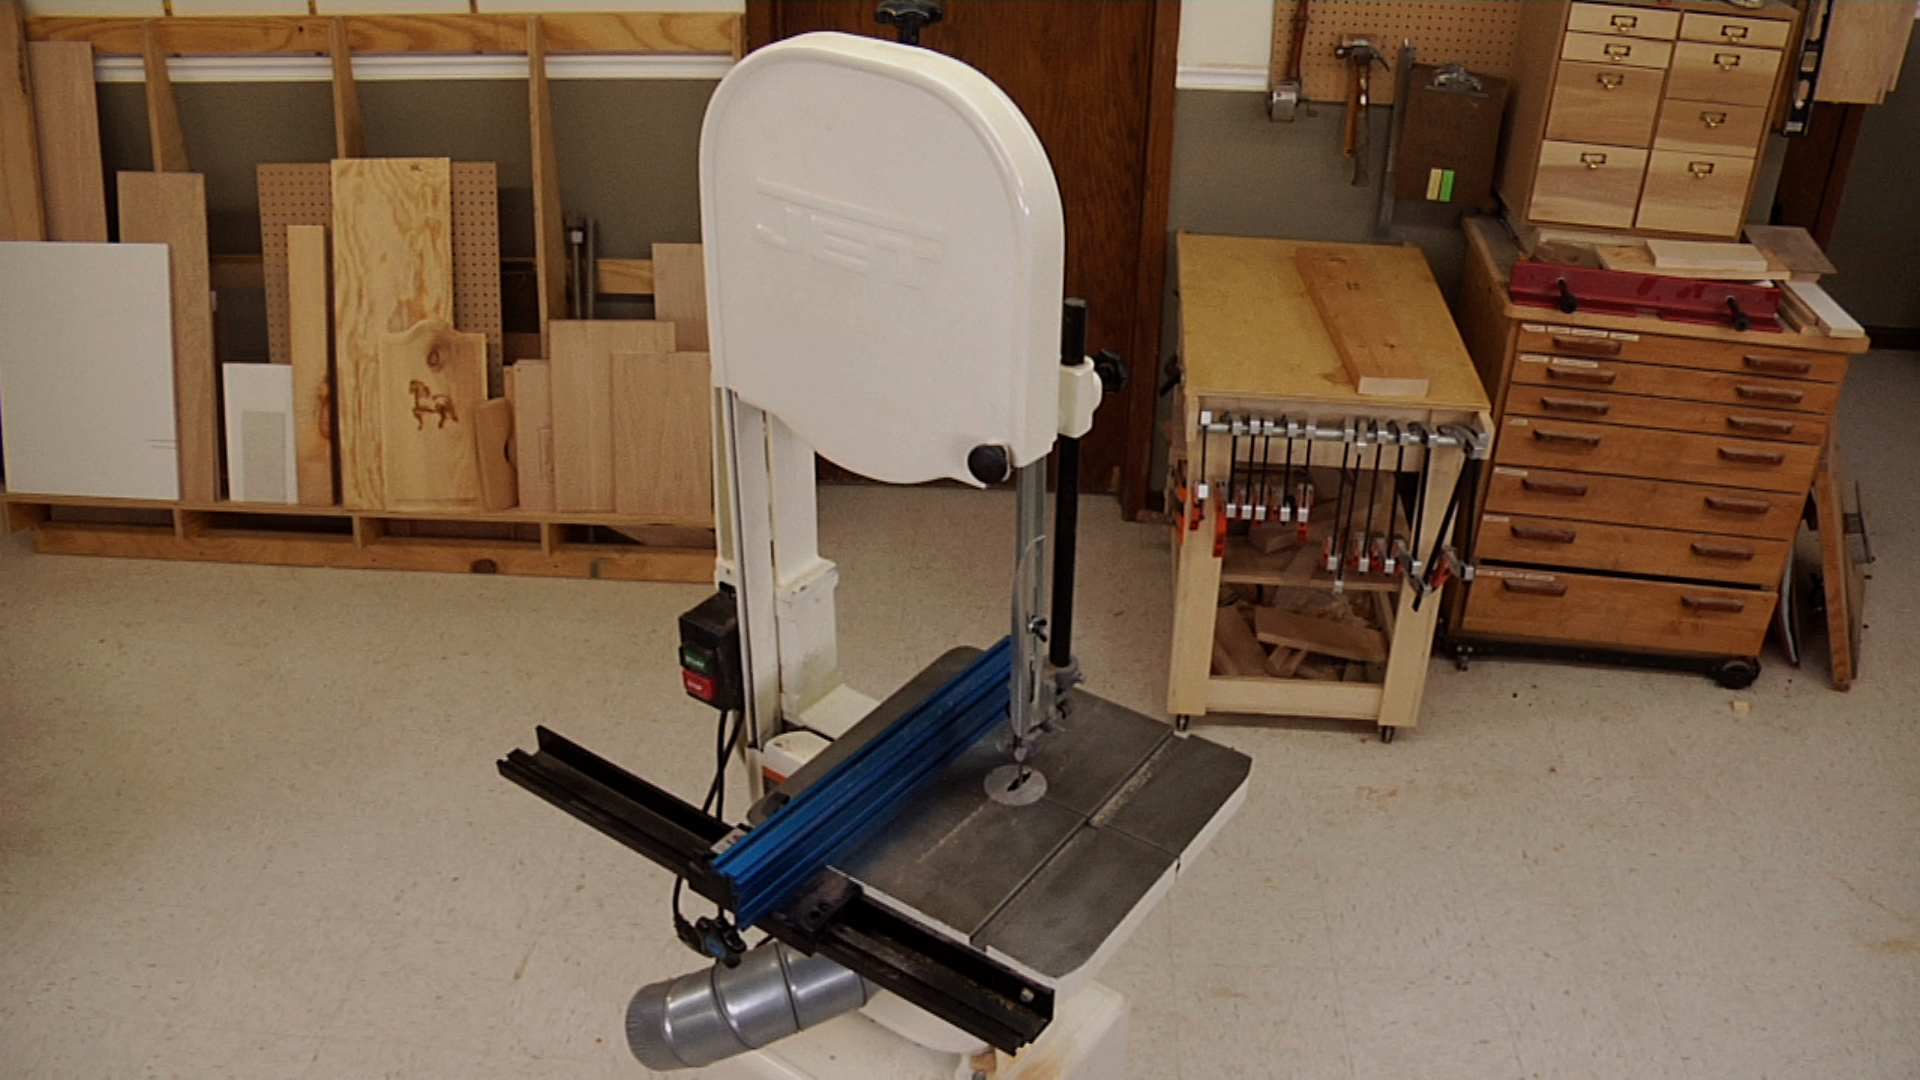 Sharpen Your Skills - Bandsaw Safety